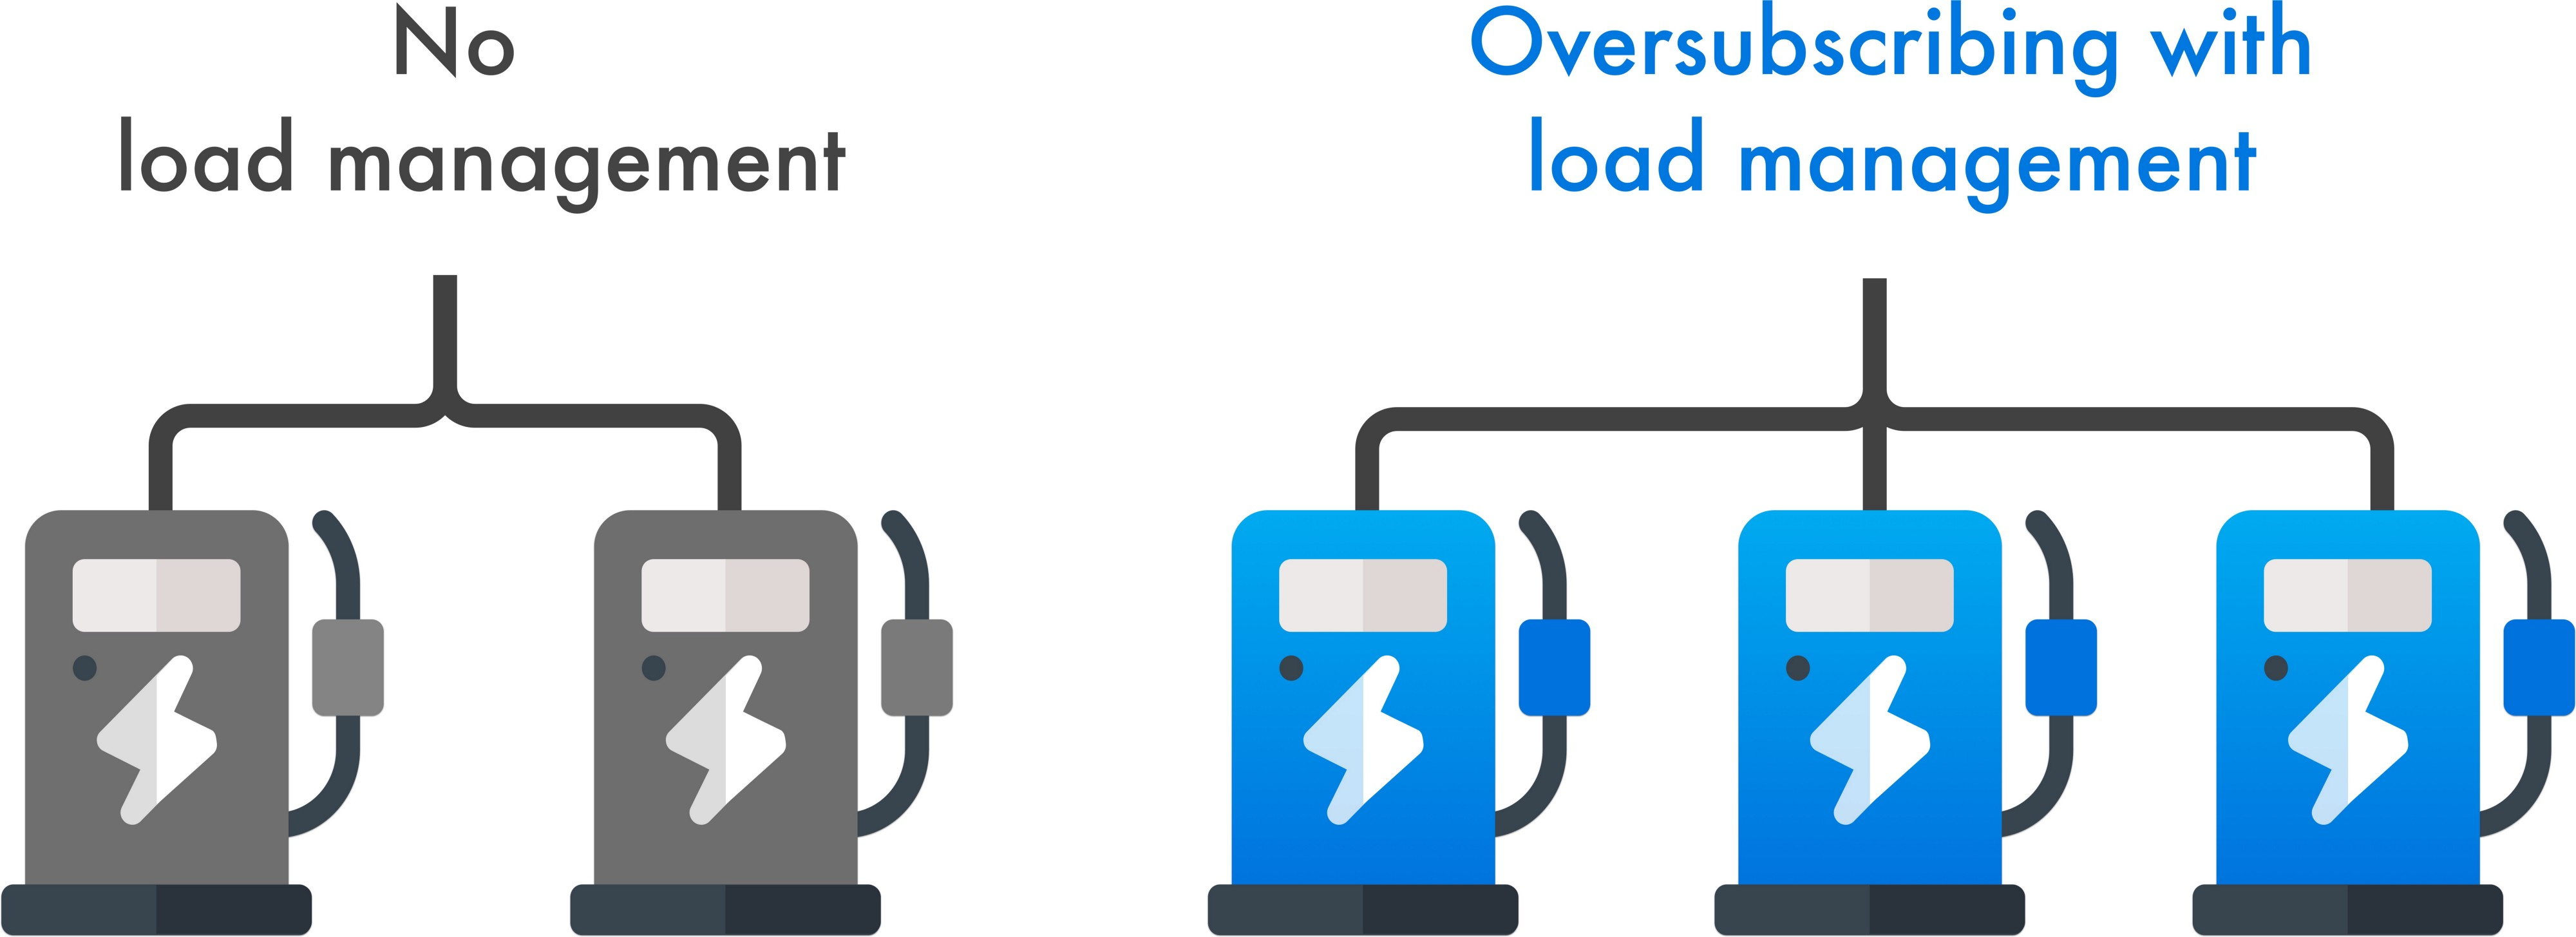 Difference load management vs no load management and how to oversubscribe ev chargers